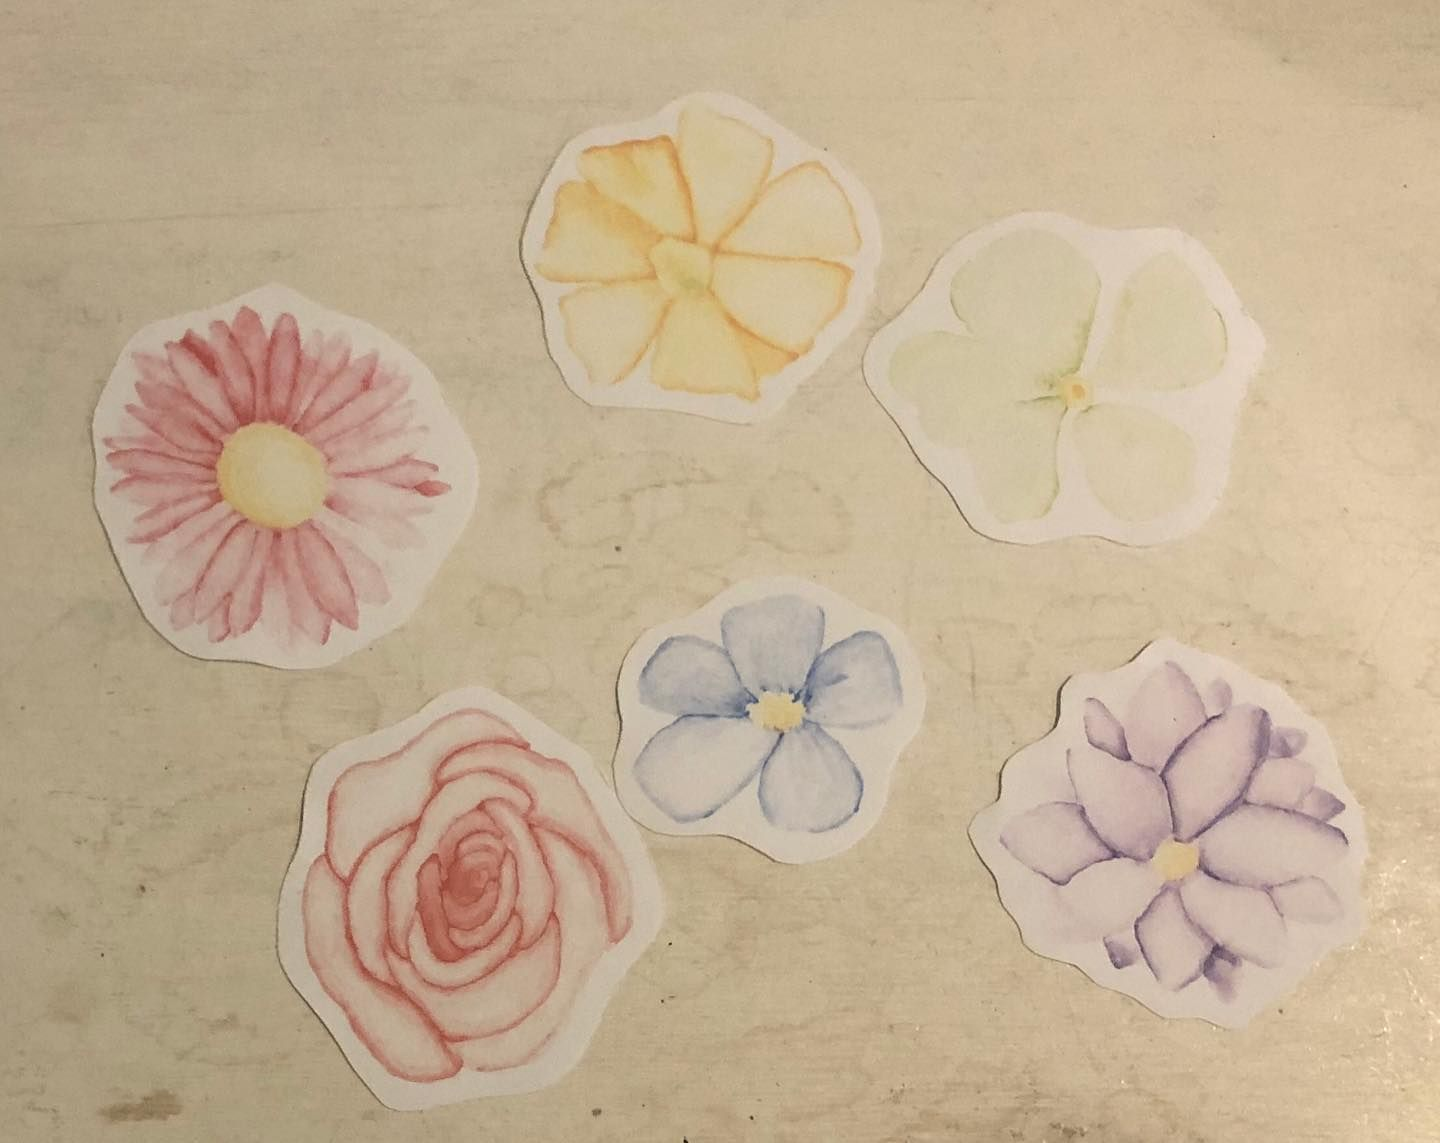 Made some stickers out of some watercolor flowers I did over the weekend ~ ~ ~ ~ ~ ~ ~ ~ ~ ~ #art #artist #artwork #instaart #arte #artistsoninstagram #artofvisuals #artoftheday #artsy #fineart #artistic #artists #arts #artgallery #artistsofinstagram #procreate #stickers #printed #watercolor #flowers #colorful #formybulletjournal #bulletjournal #lotsofpaper #longprocess #lotsofflowers #sticky #givemeideas #imrunningoutofideas #quarantineart